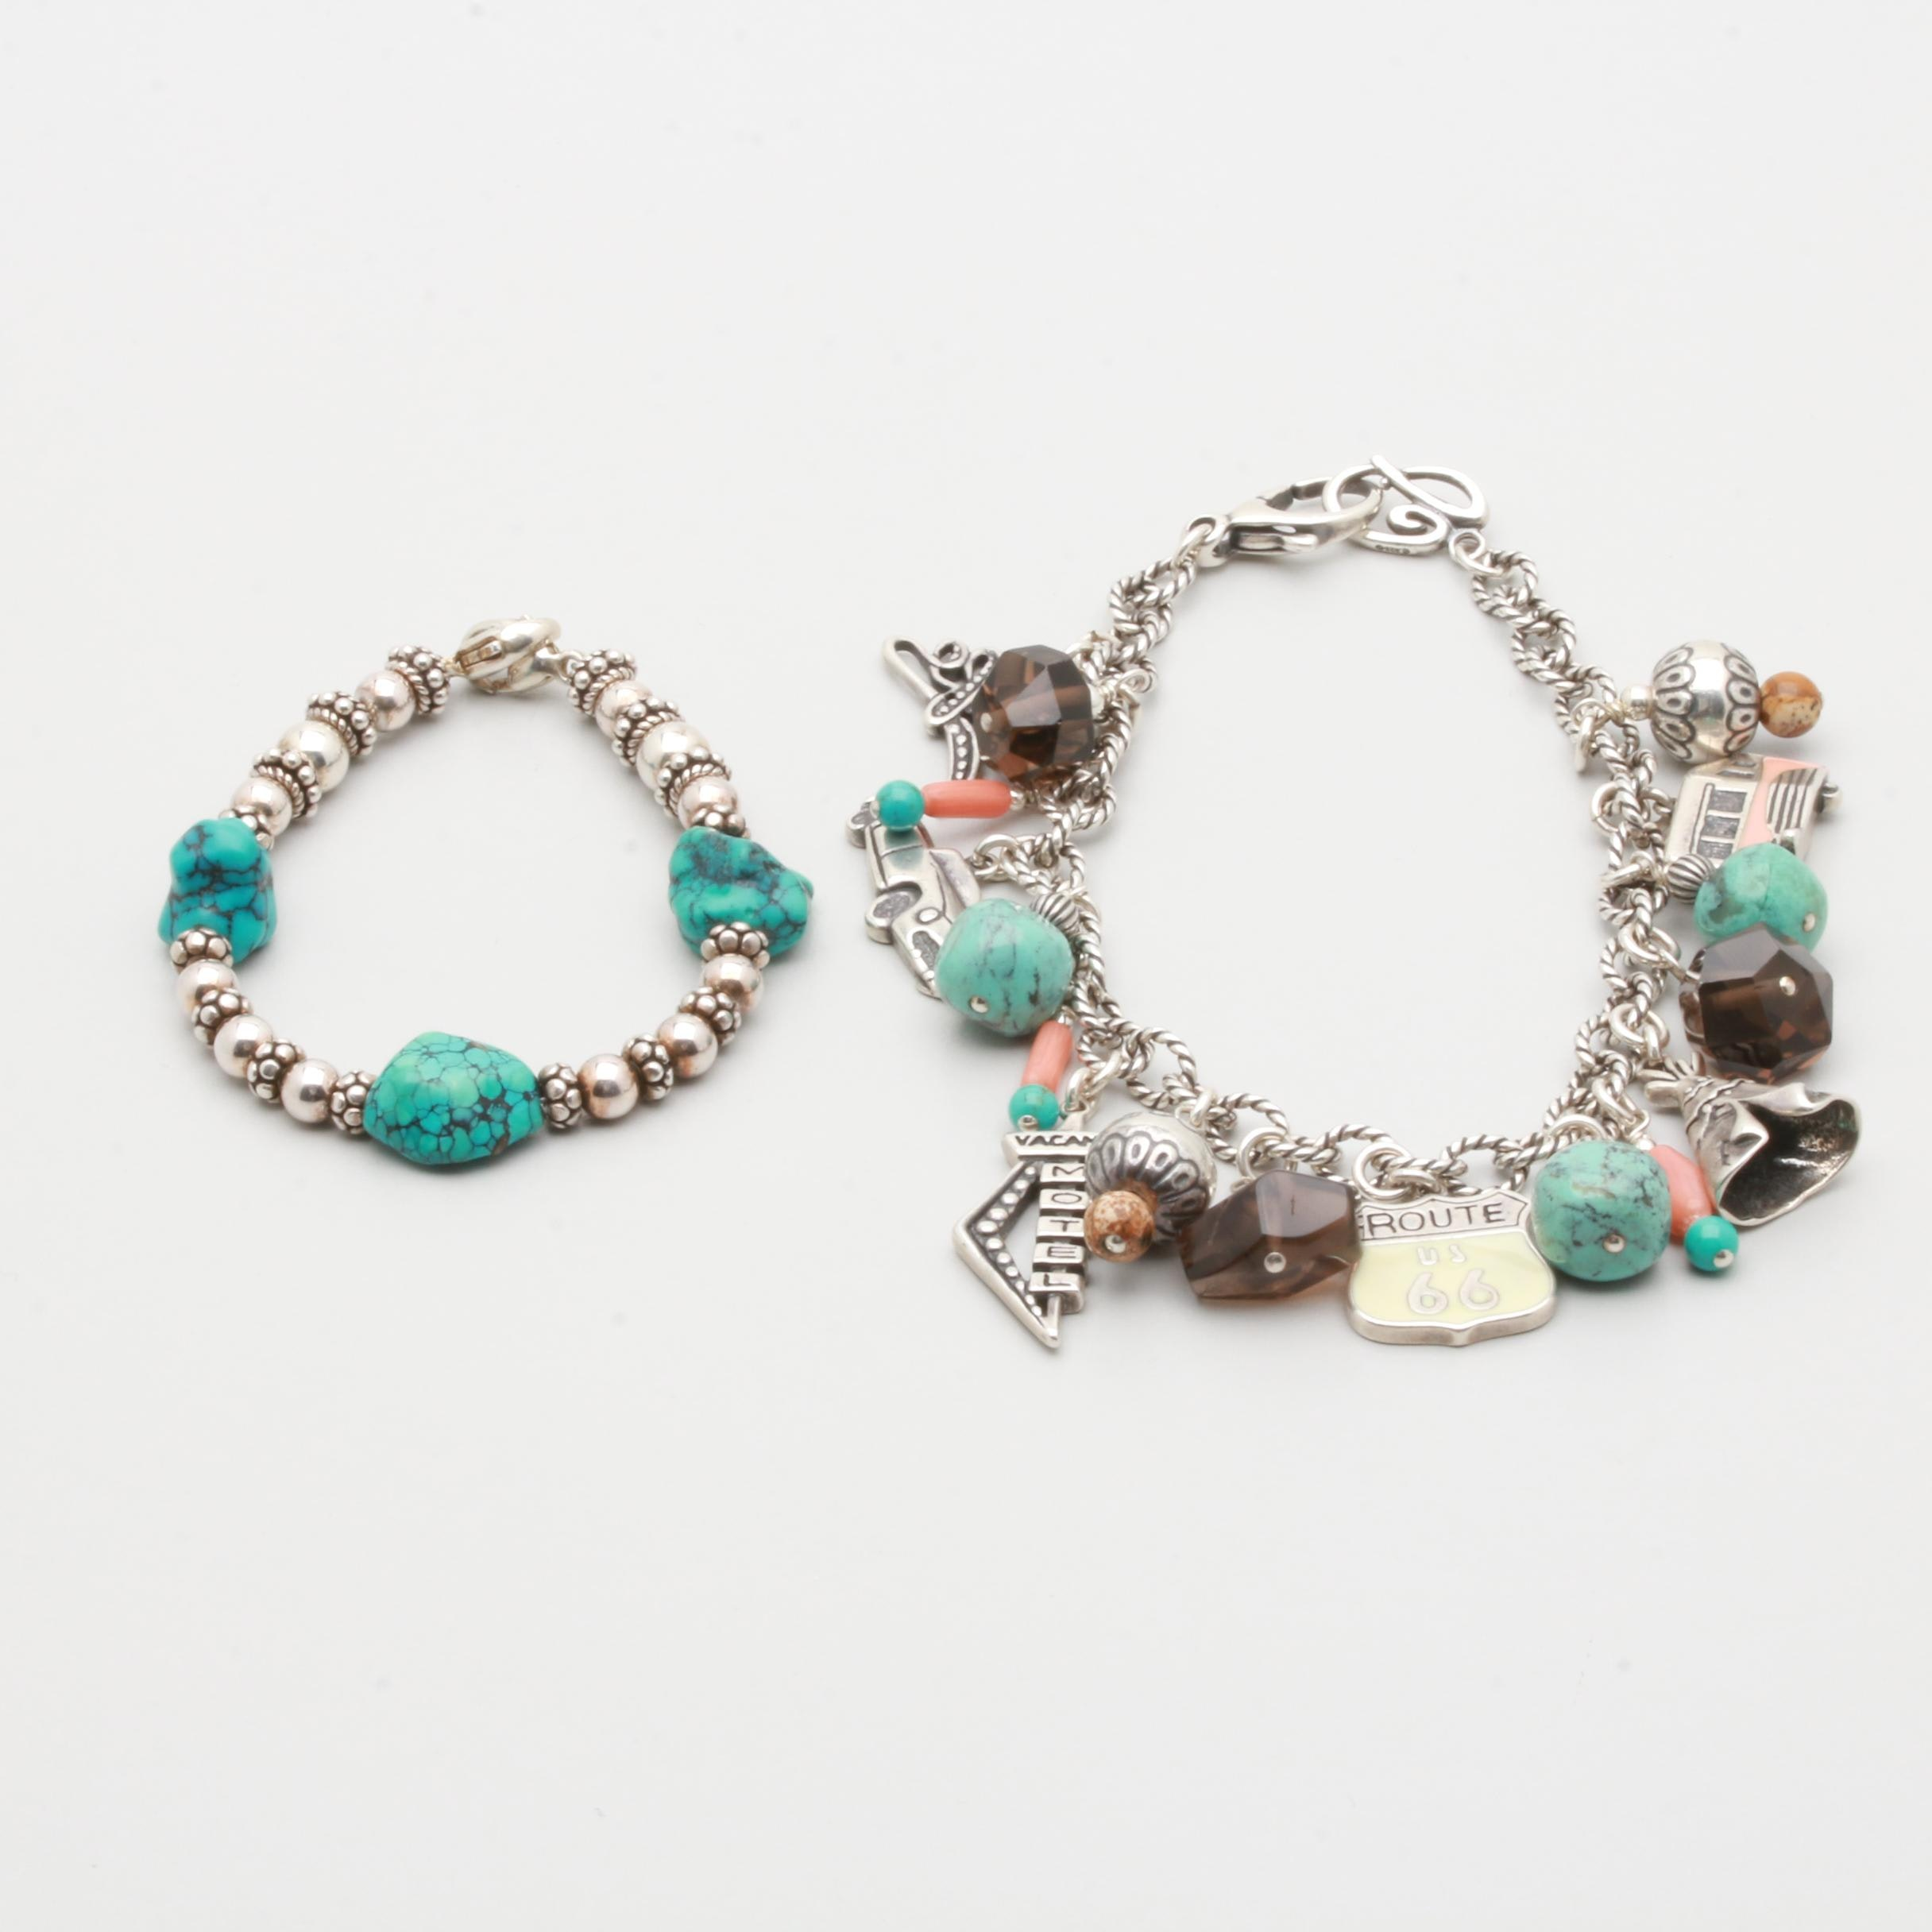 """Sterling Silver Bracelets with Carolyn Pollack """"Route 66"""" Charm Bracelet"""